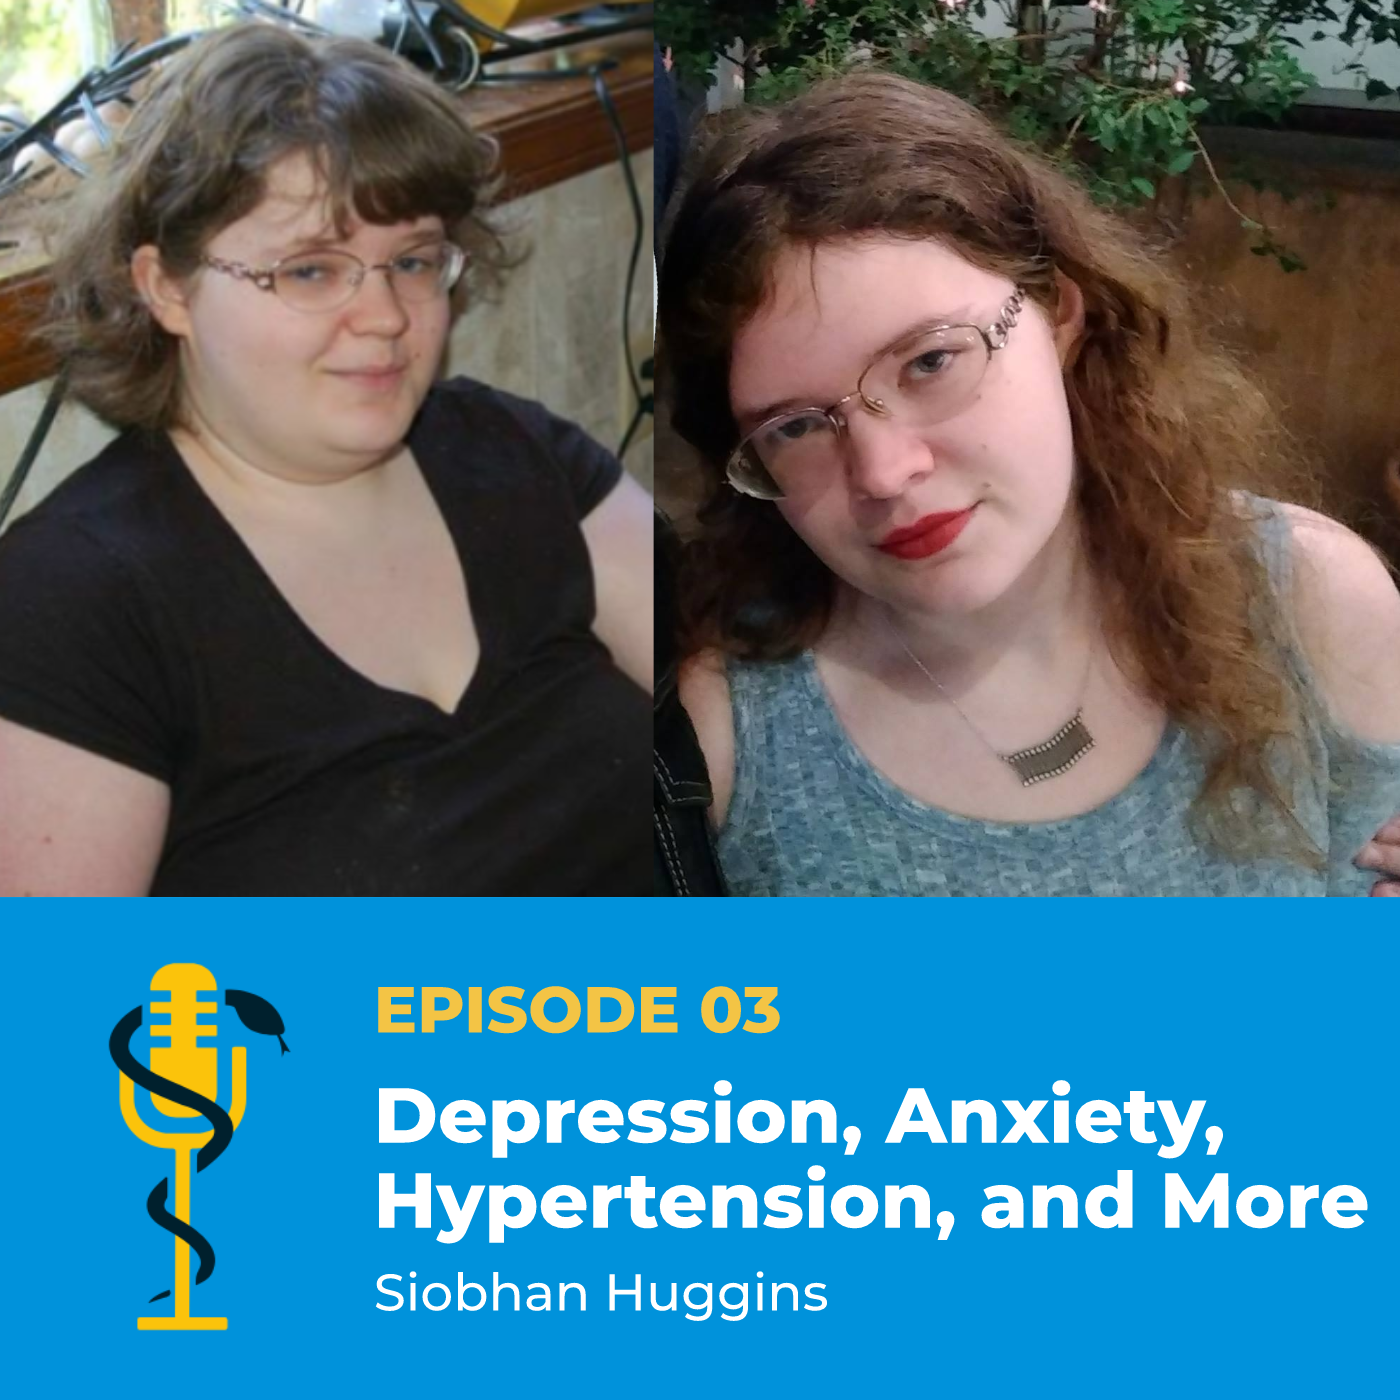 Ep.03: Depression, Anxiety, Hypertension, and More with Siobhan Huggins